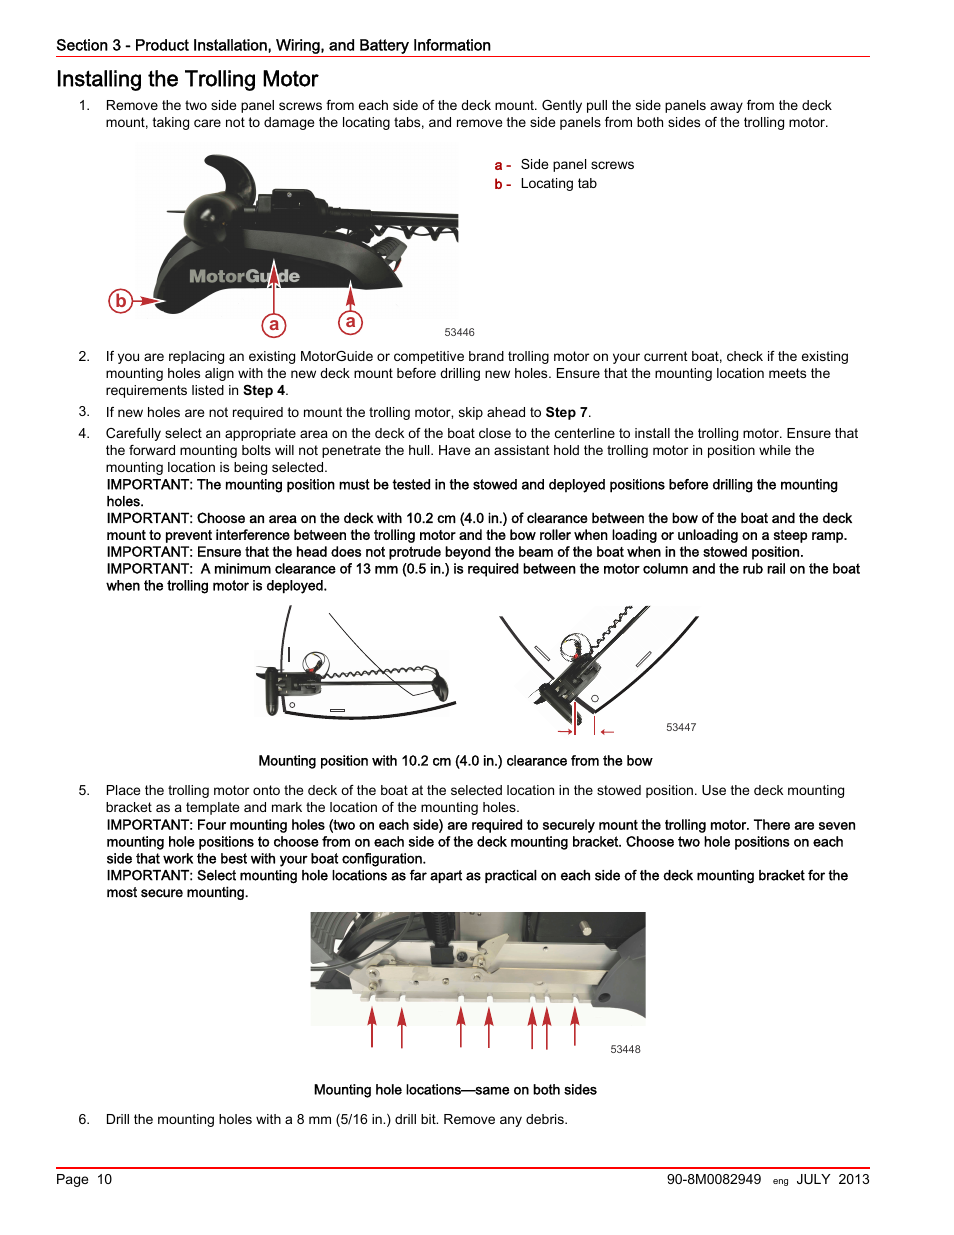 How To Wire A Trolling Motor Manual Guide